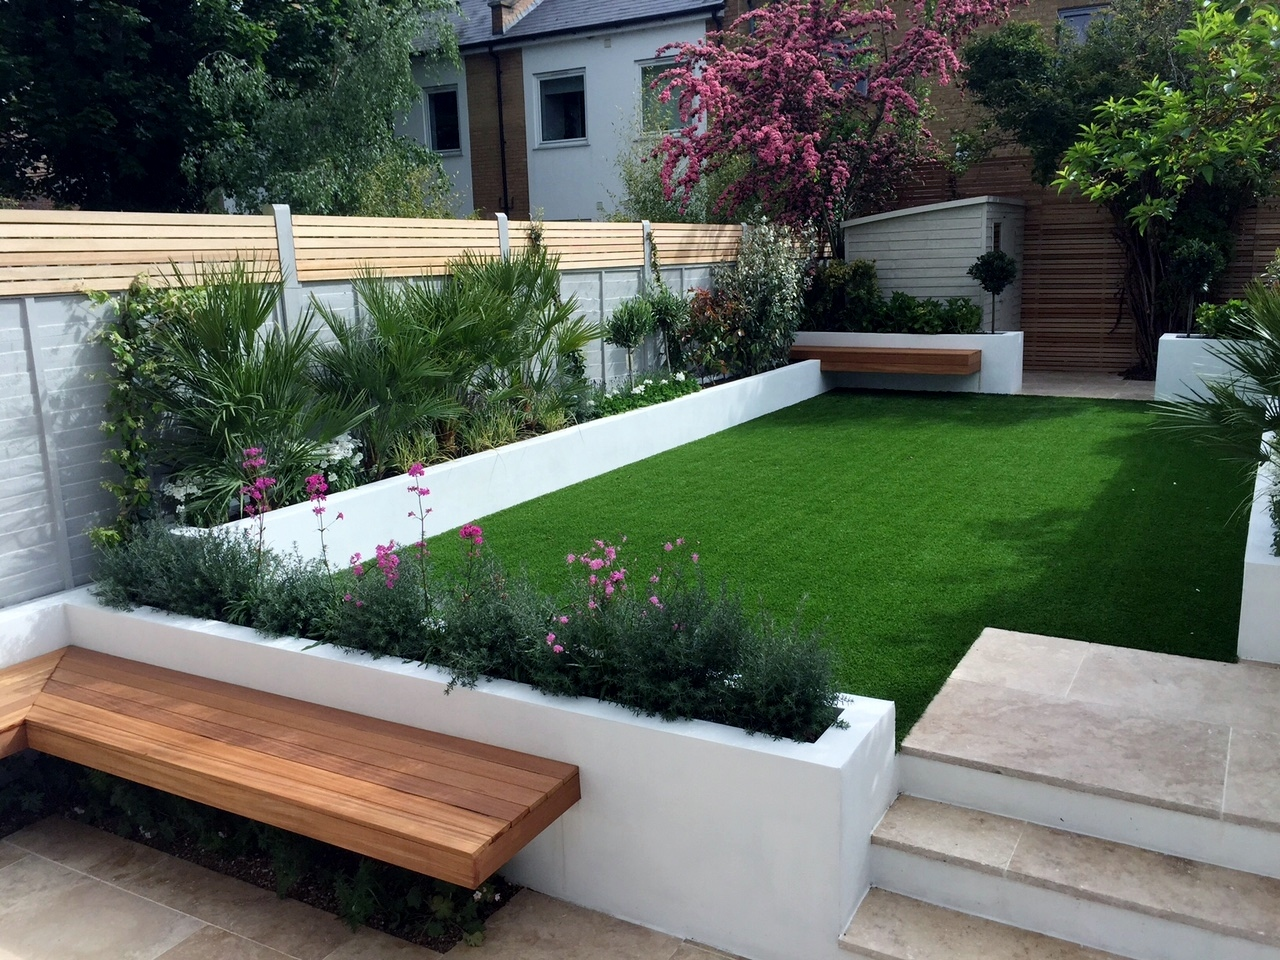 Modern garden design ideas fulham chelsea battersea for Modern landscape design